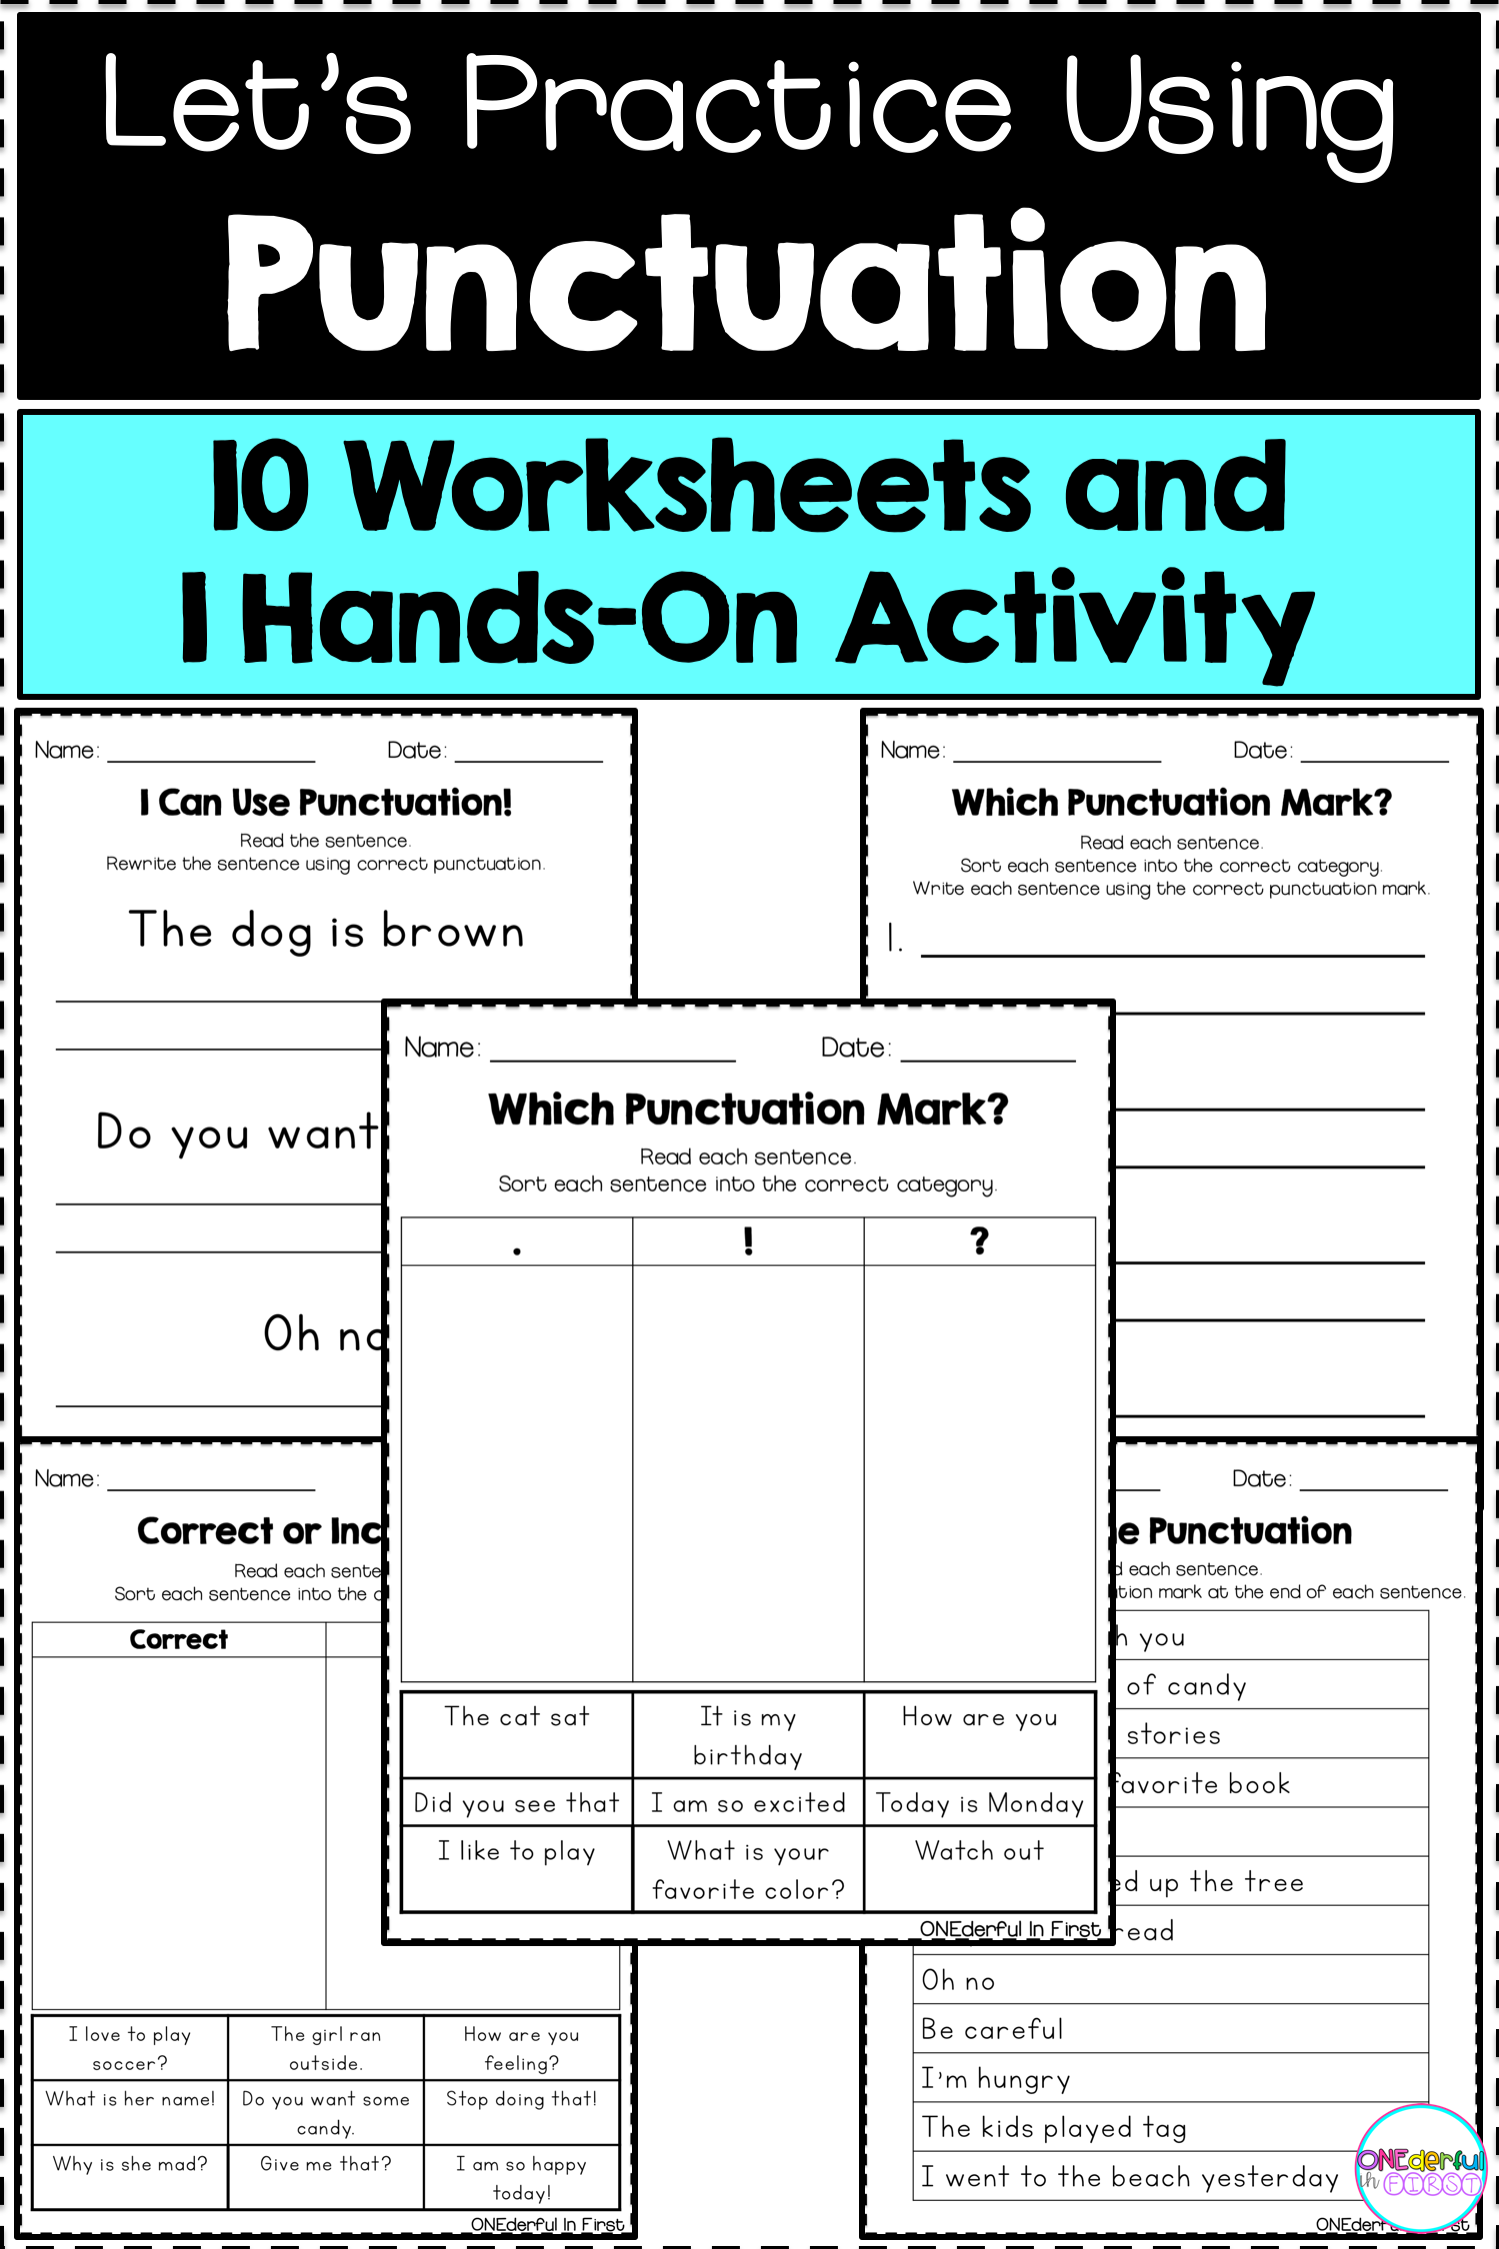 small resolution of Punctuation - Worksheets and Hands-On Activity   Punctuation worksheets